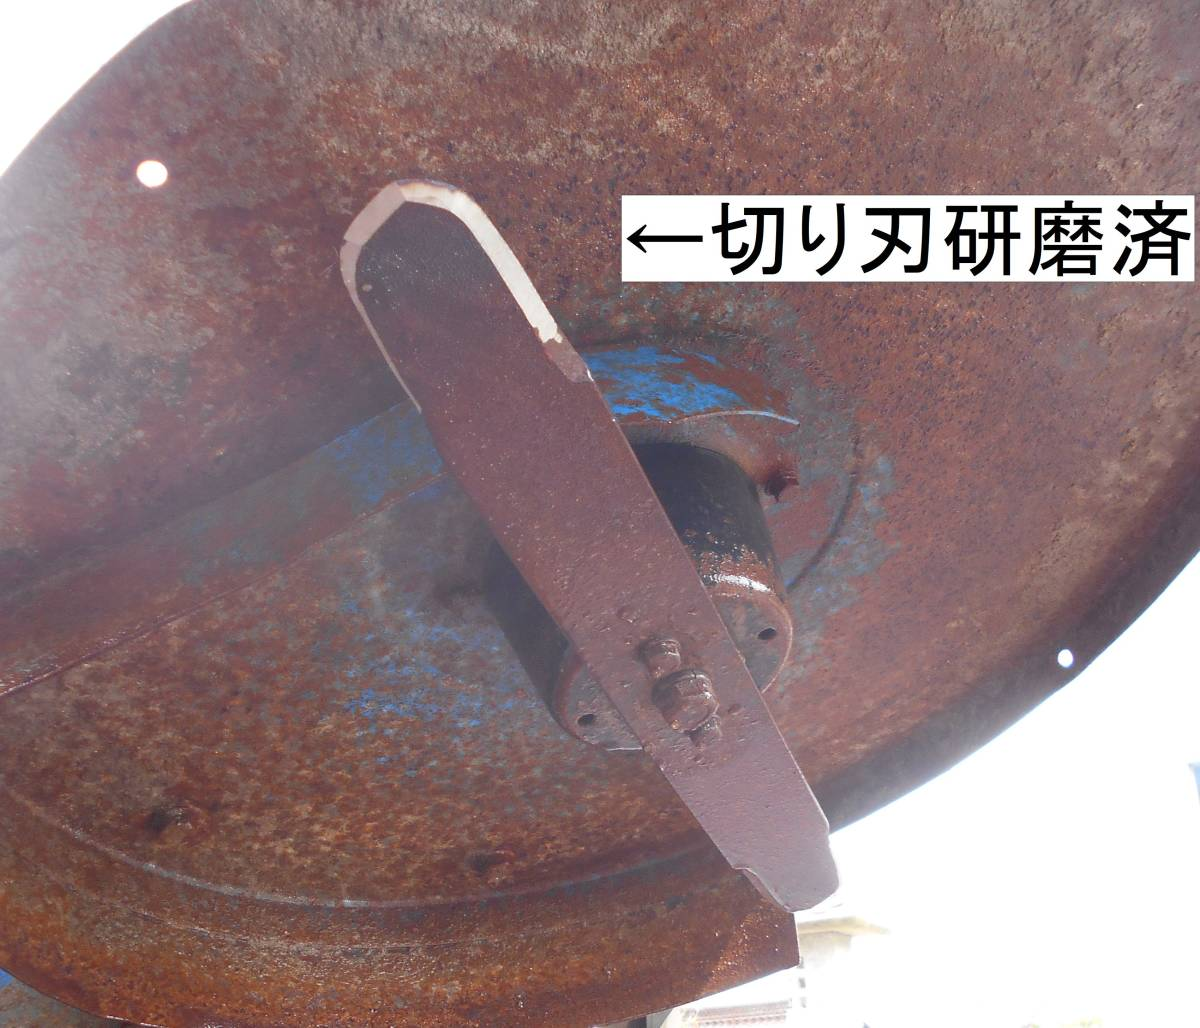 344■OREC オーレック ロータリモーア AM61A 切刃研磨済 広島■_画像8